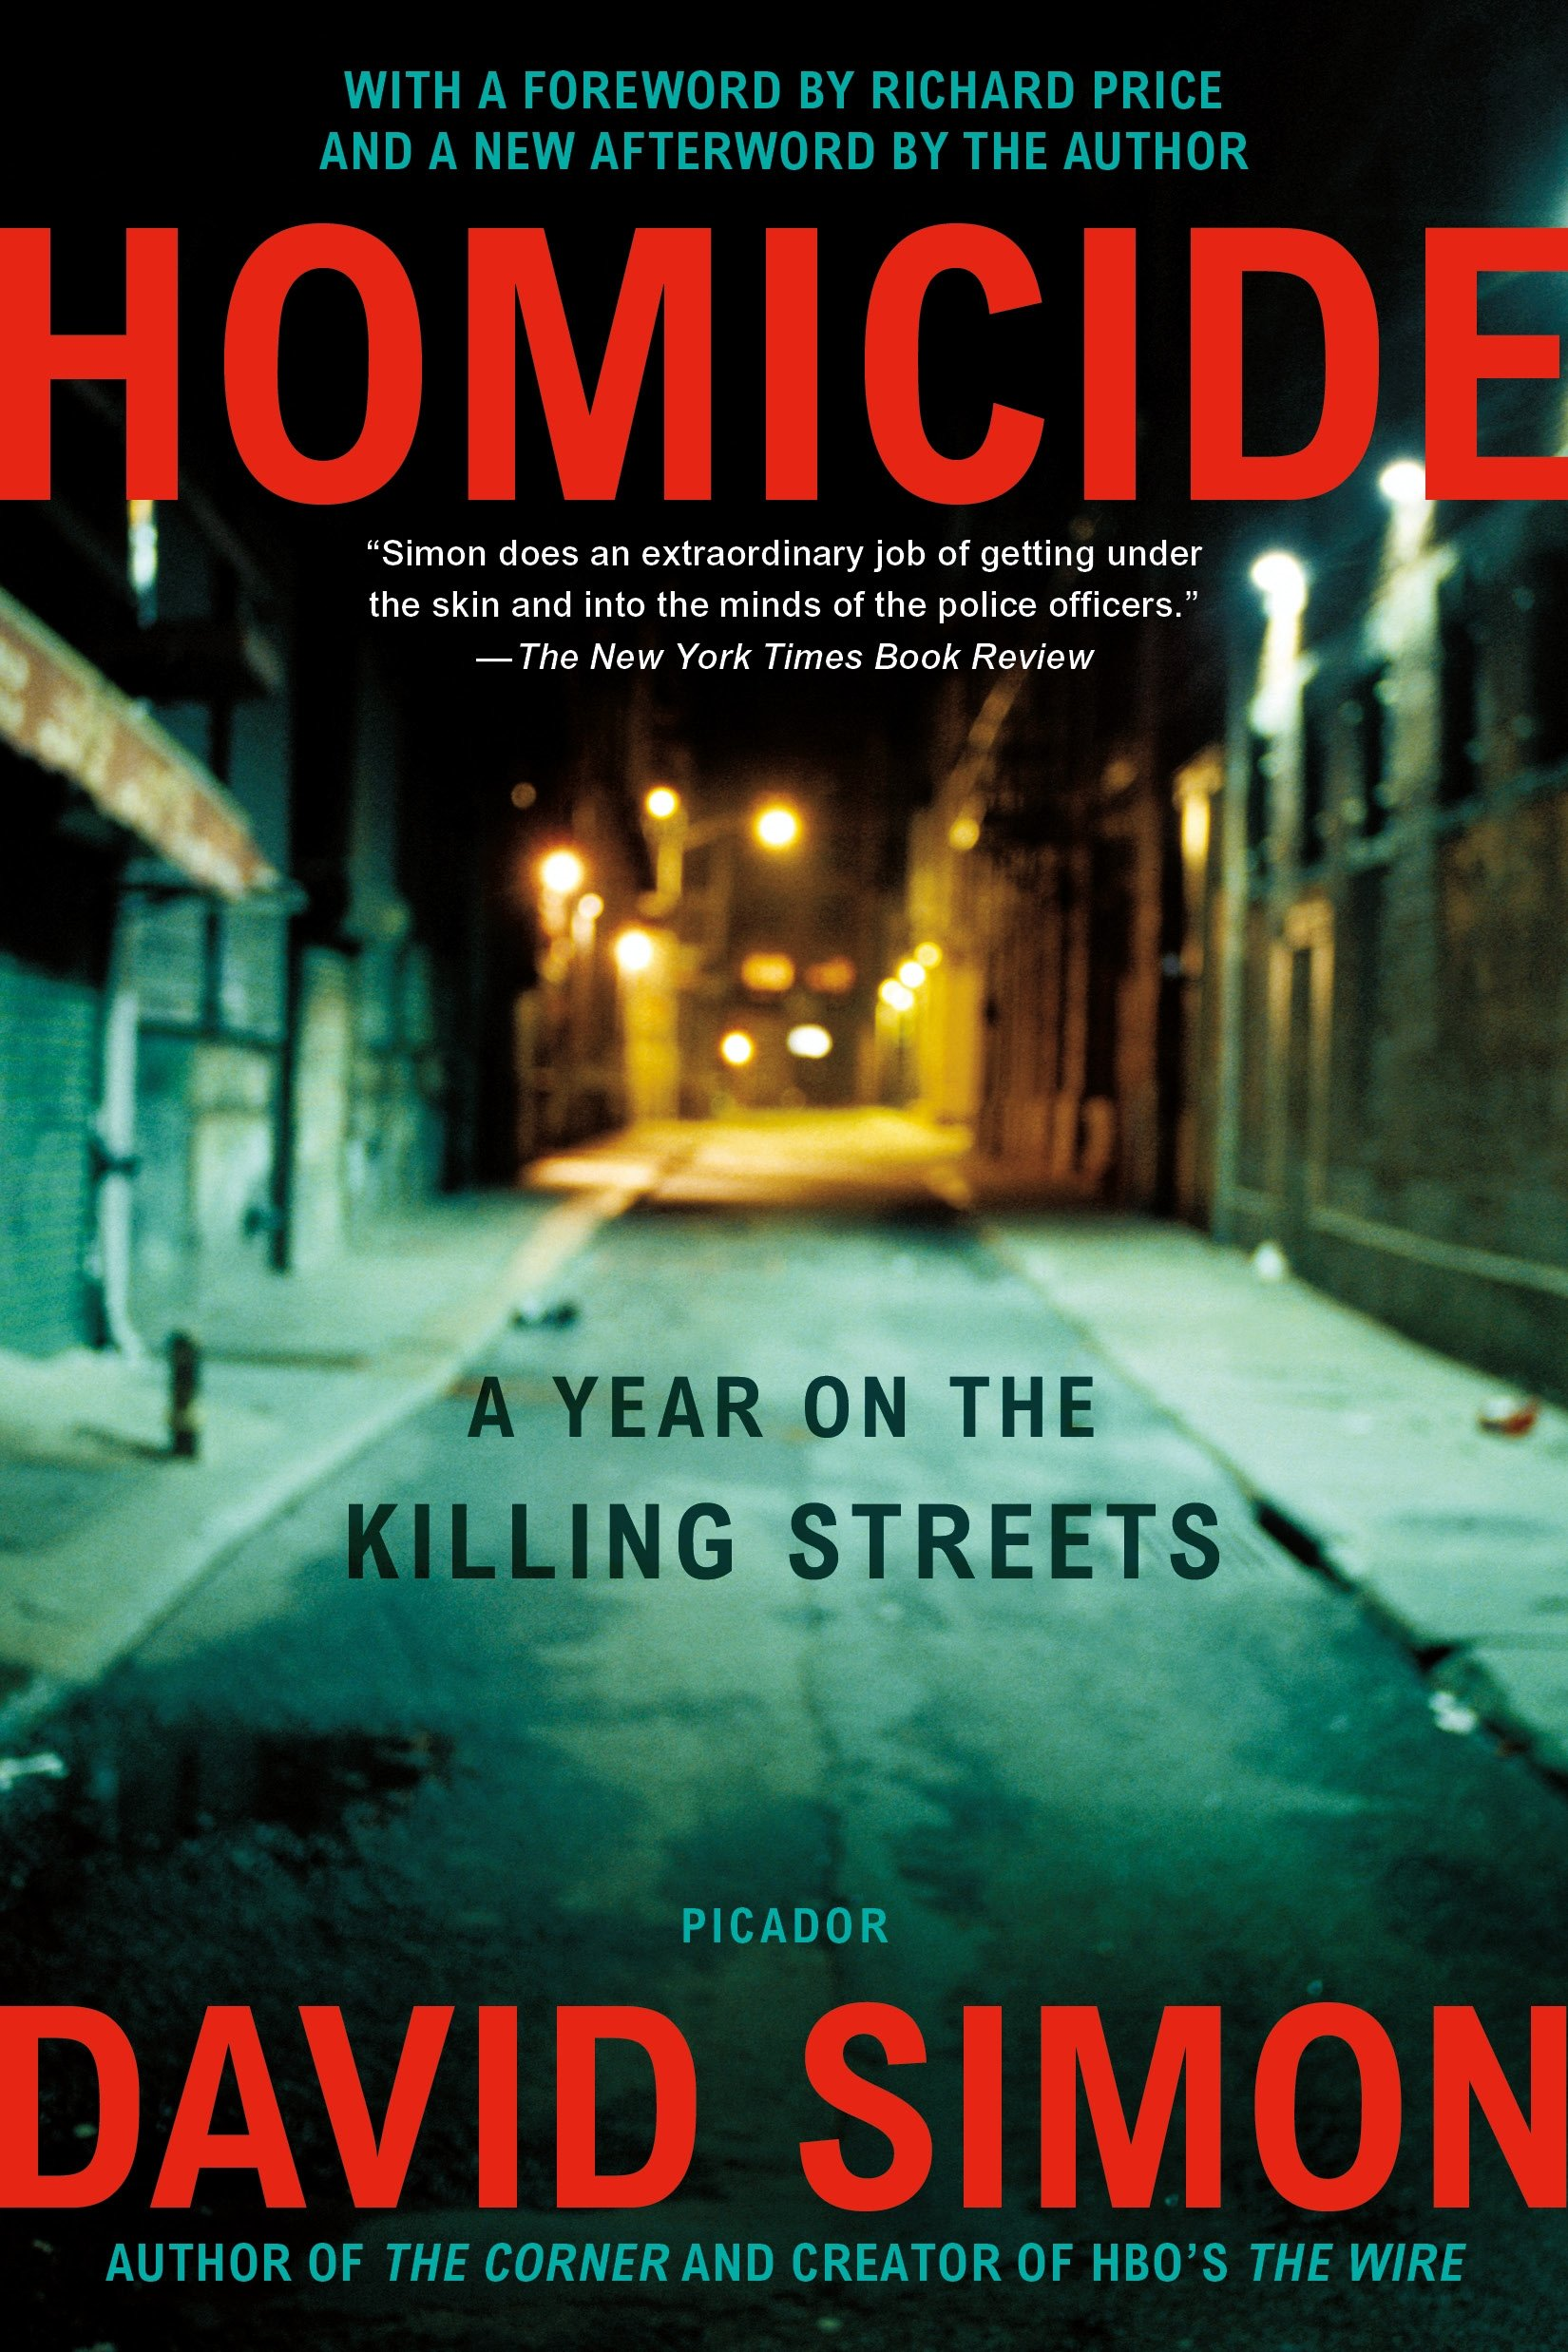 Homicide: A Year on the Killing Streets: David Simon: 9780805080759 ...